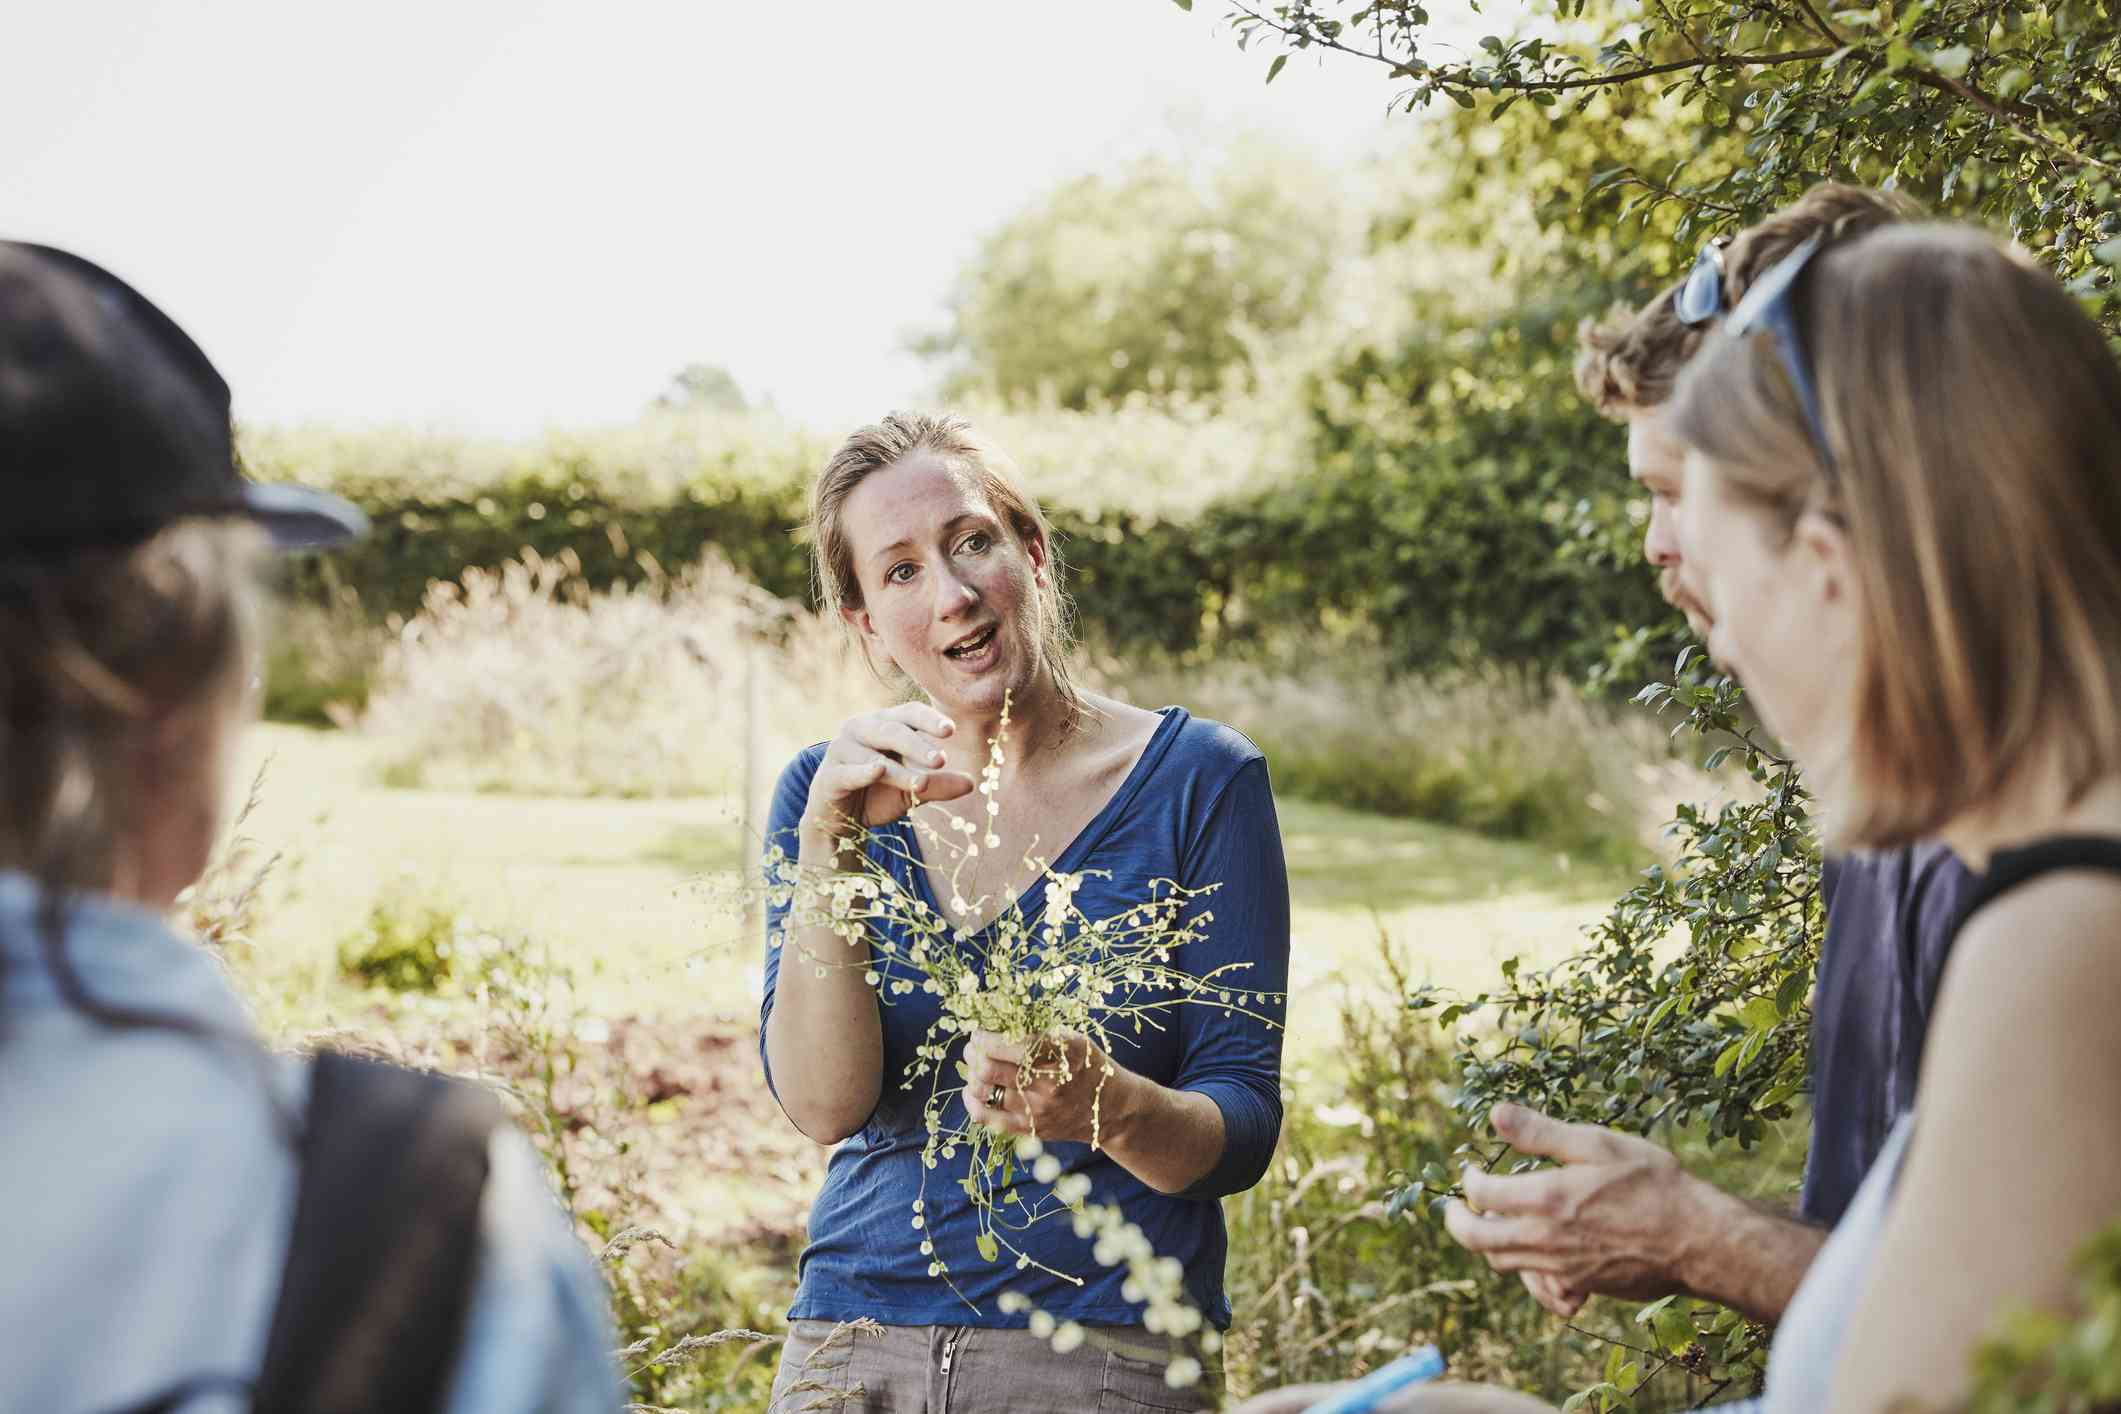 Woman holds fresh plants, talks to group about safe edible plants